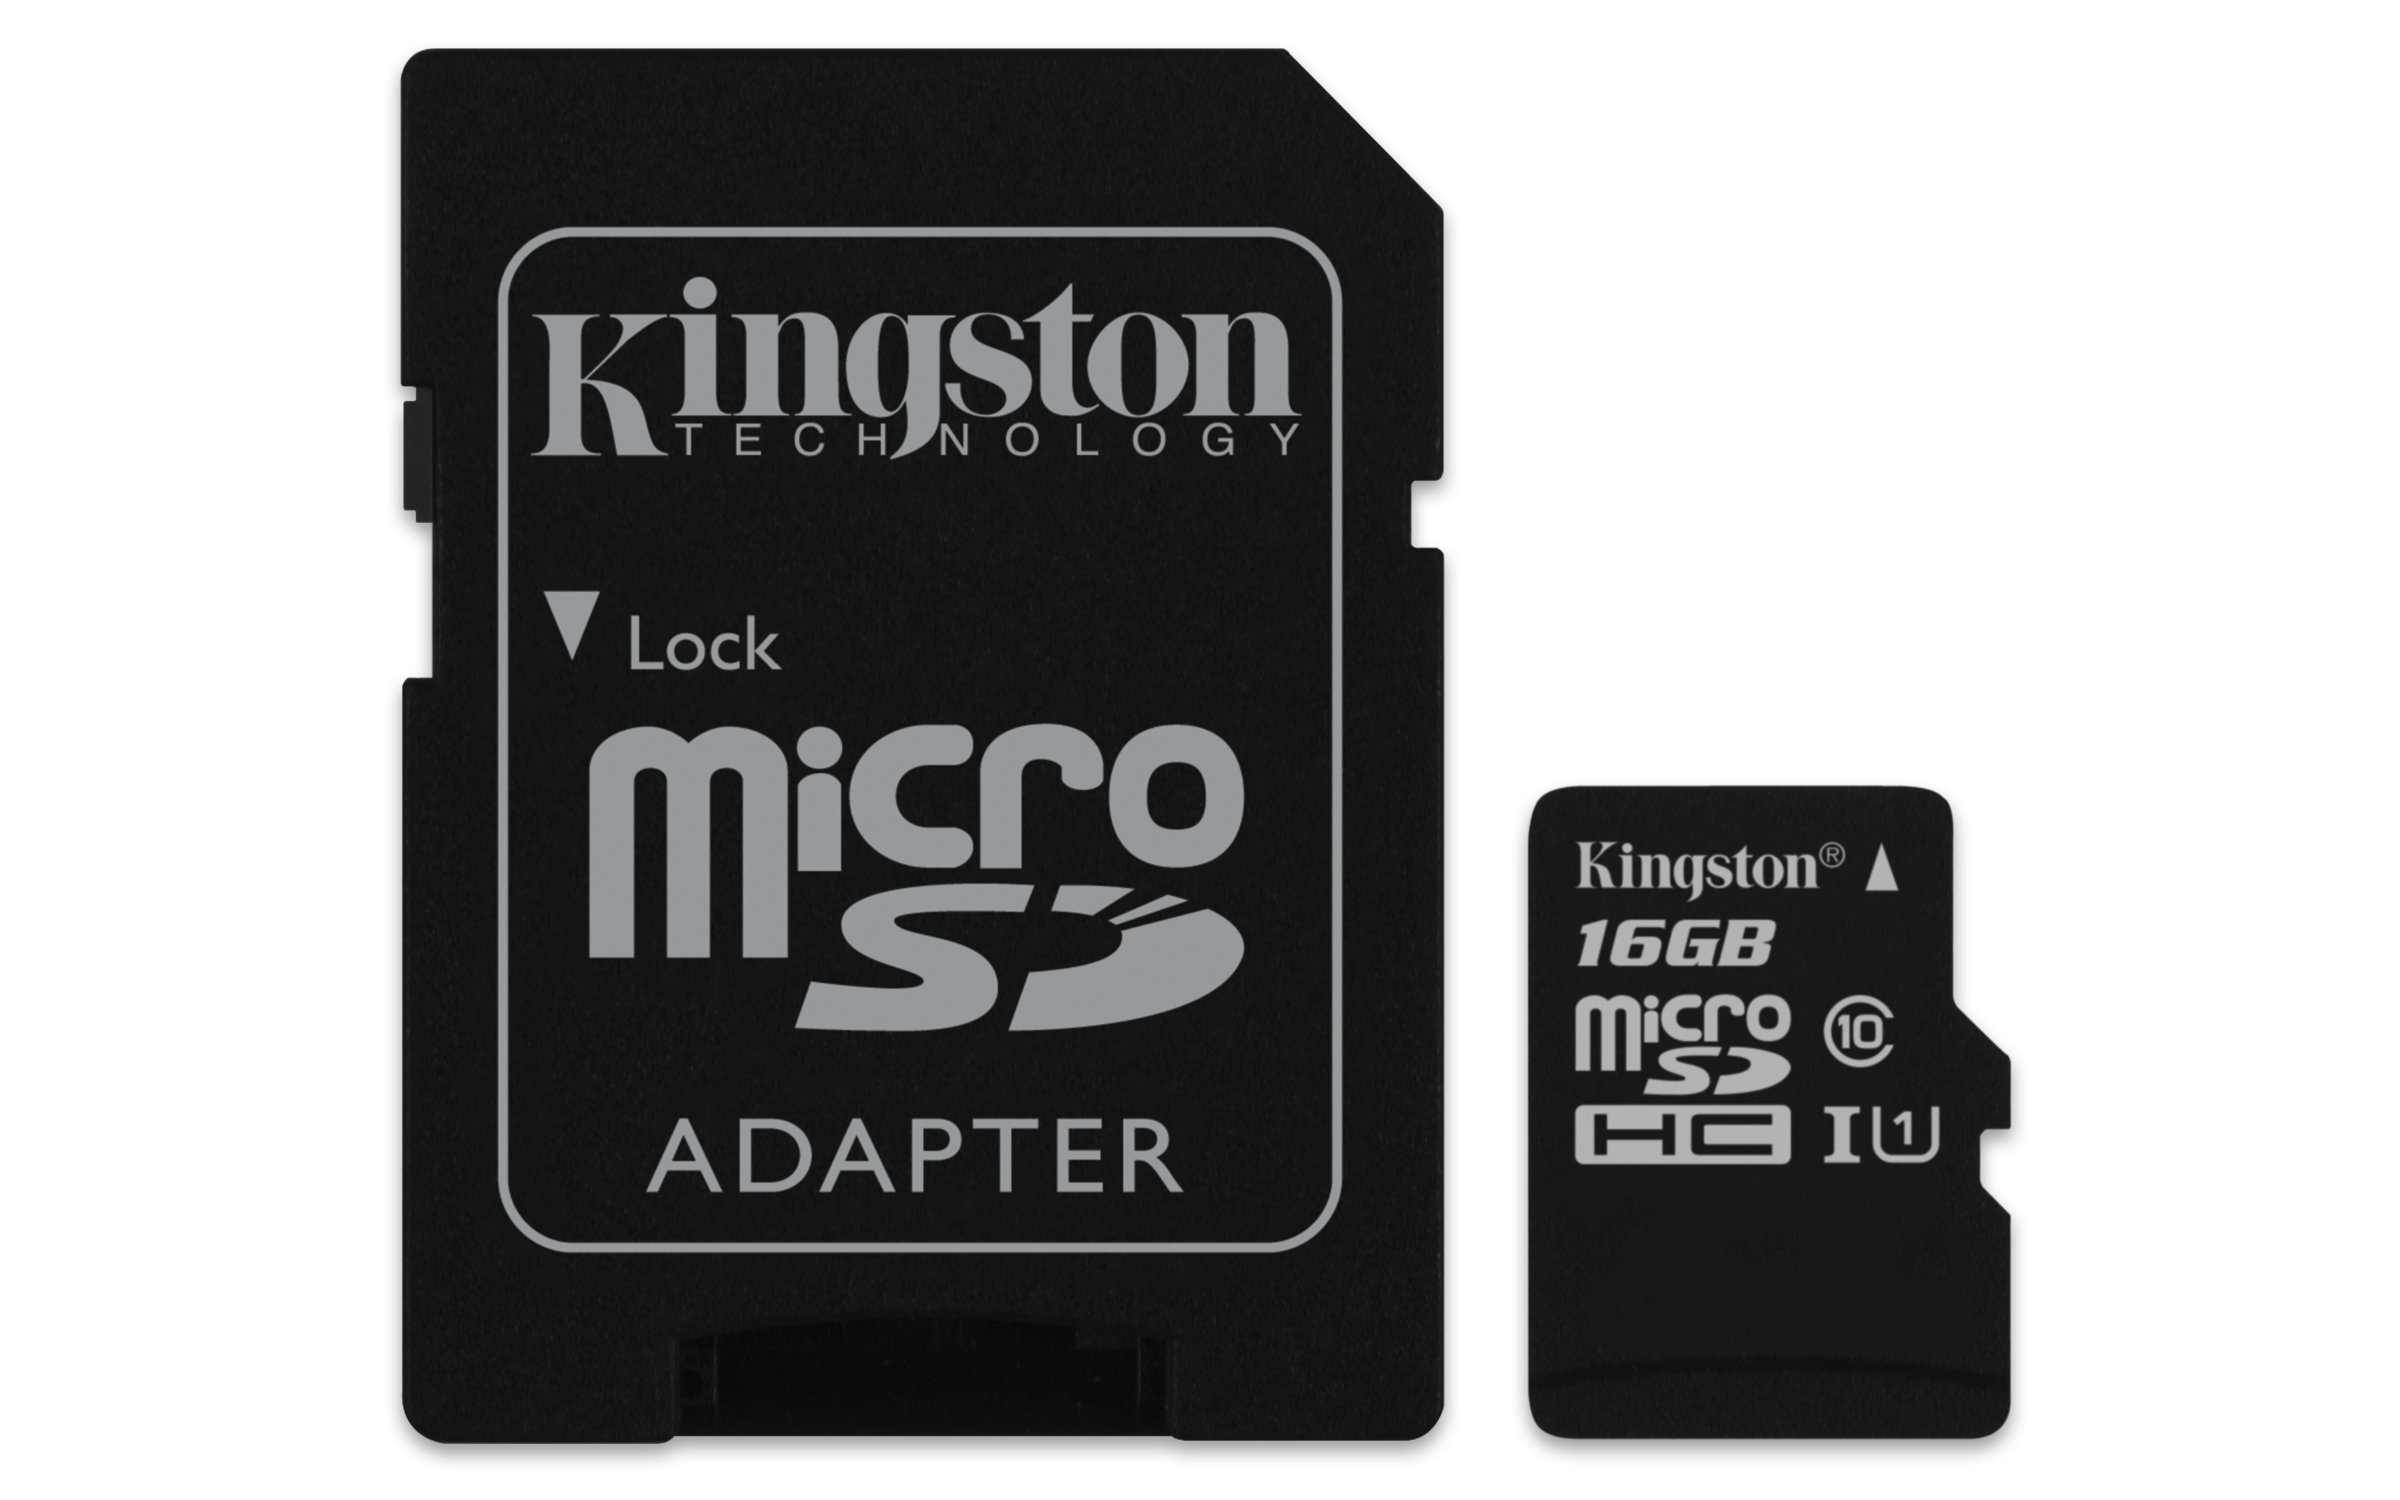 Kingston Digital 16GB Micro SDHC UHS-I Class 10 Industrial..